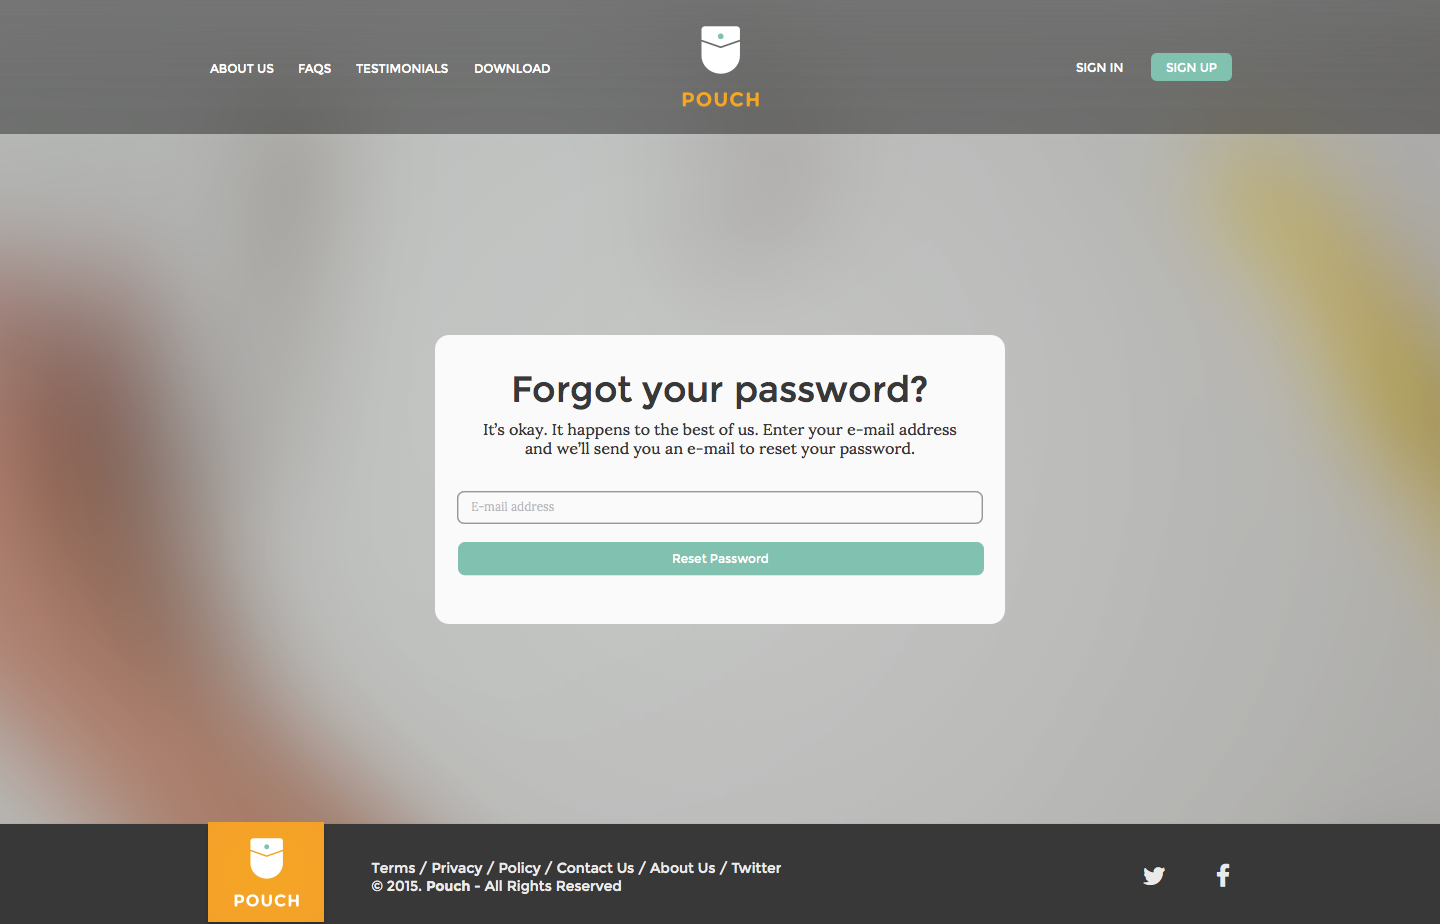 High Fidelity Wireframes - Reset Password_1440x1024 copy 6.png